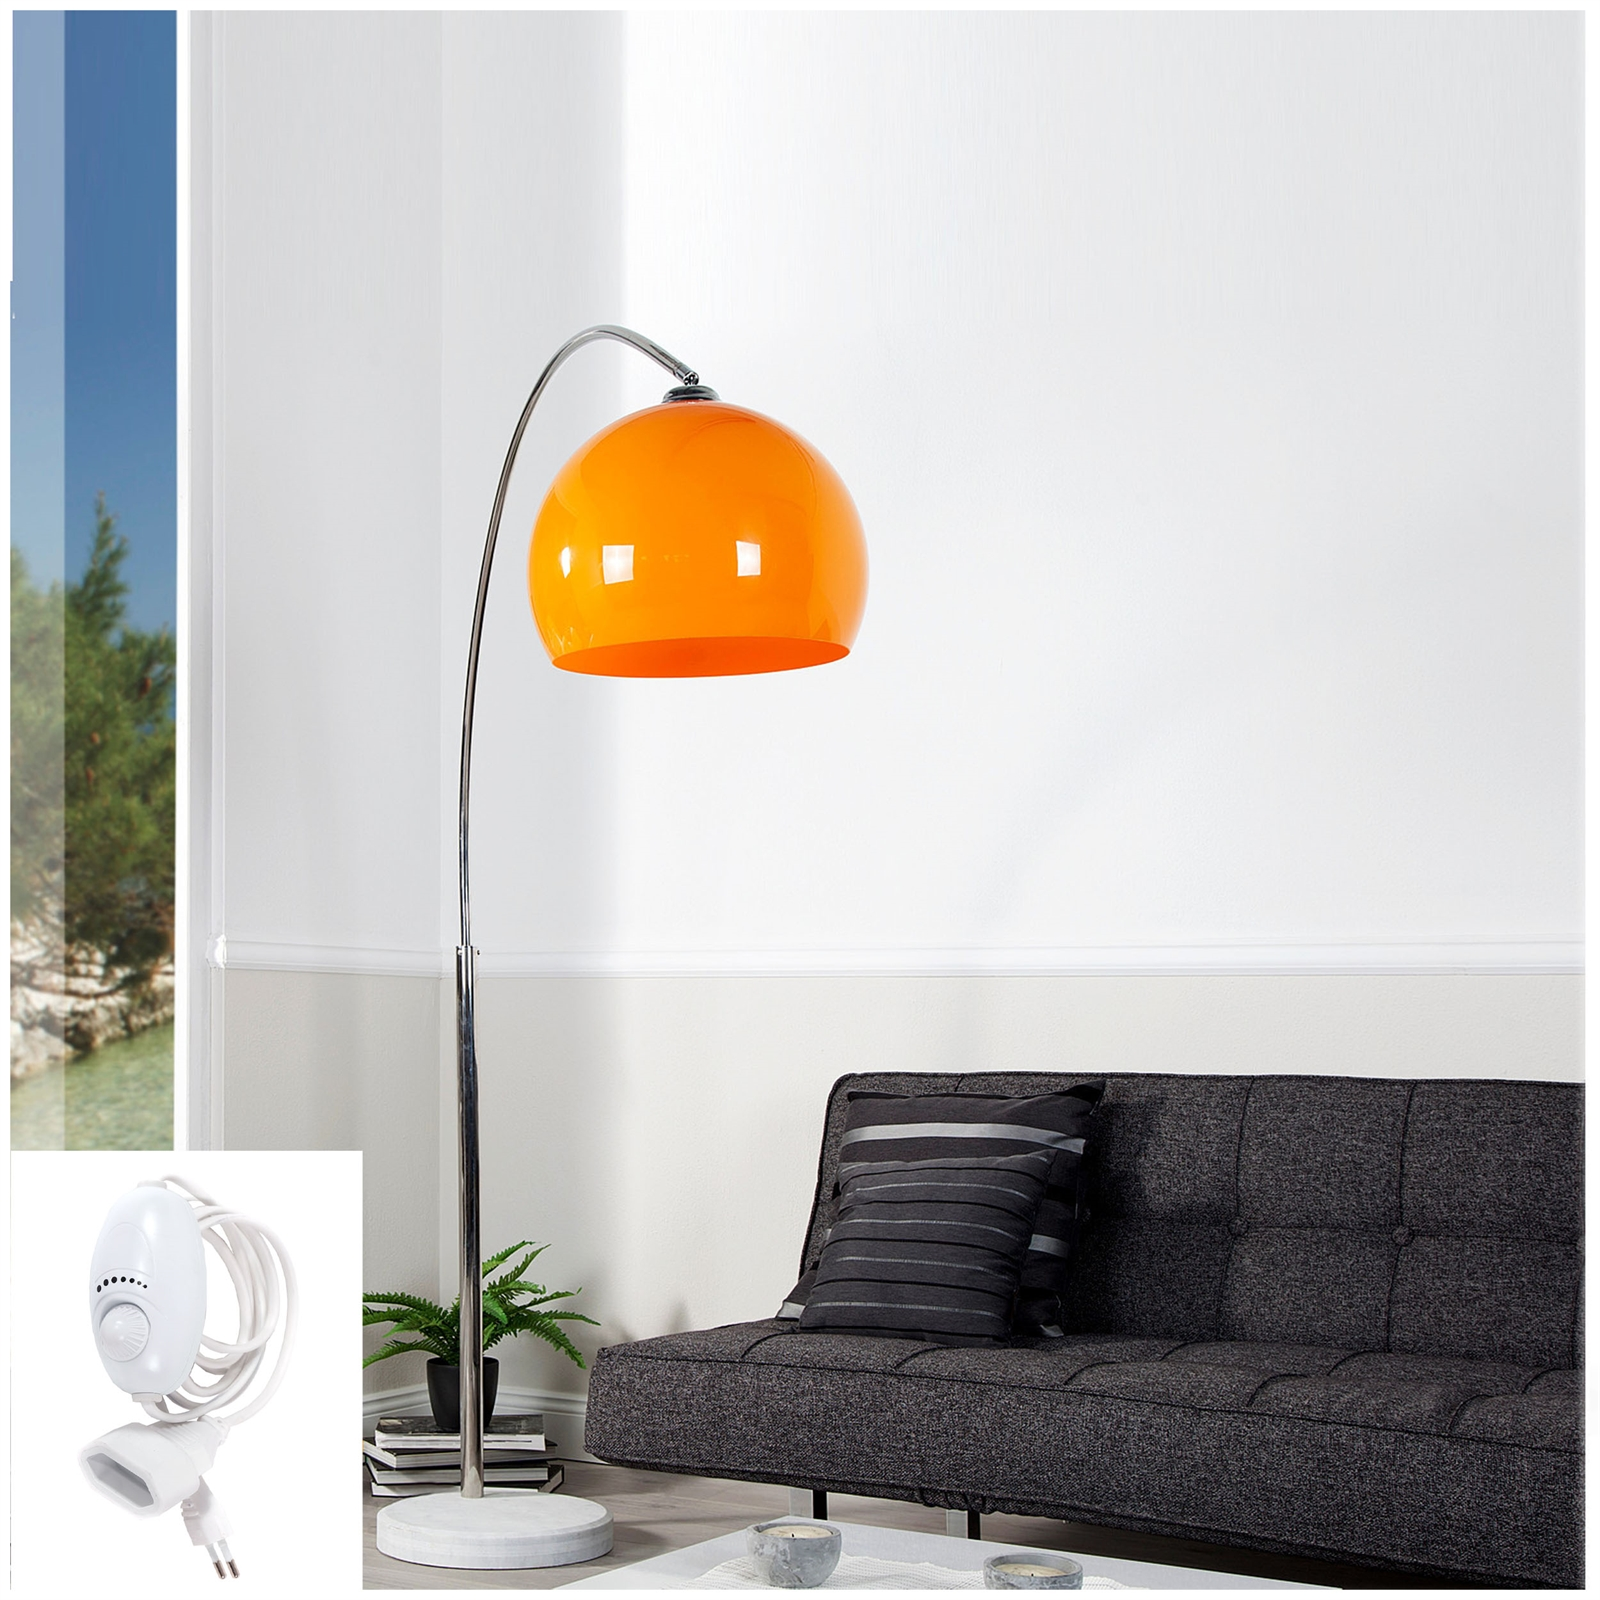 big bow retro design lampe dimmbar orange lounge stehlampe bogenlampe dimmer eur 118 00. Black Bedroom Furniture Sets. Home Design Ideas